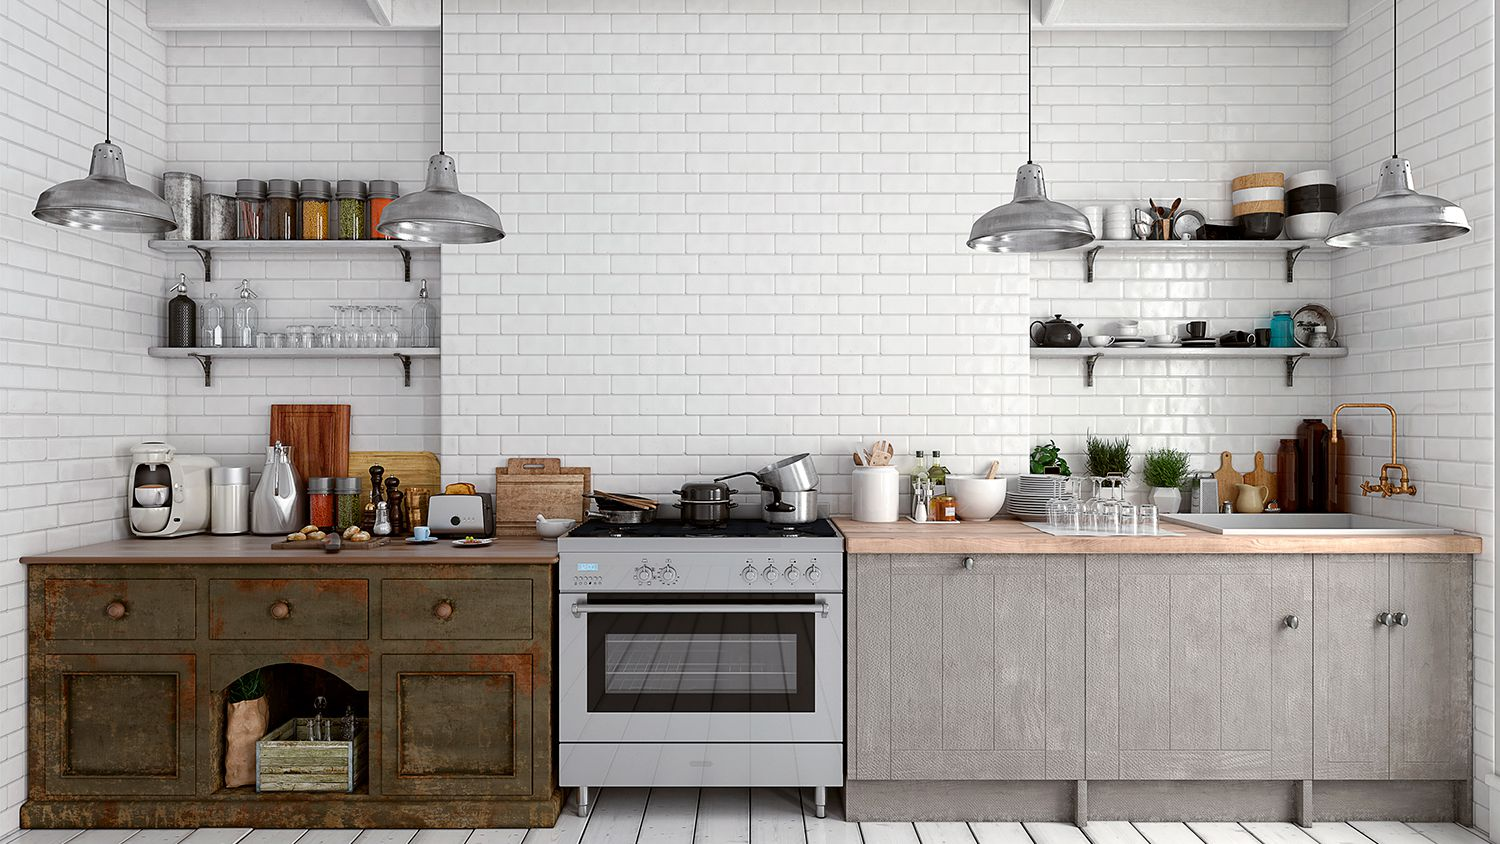 - The Best Kitchen Backsplash Materials